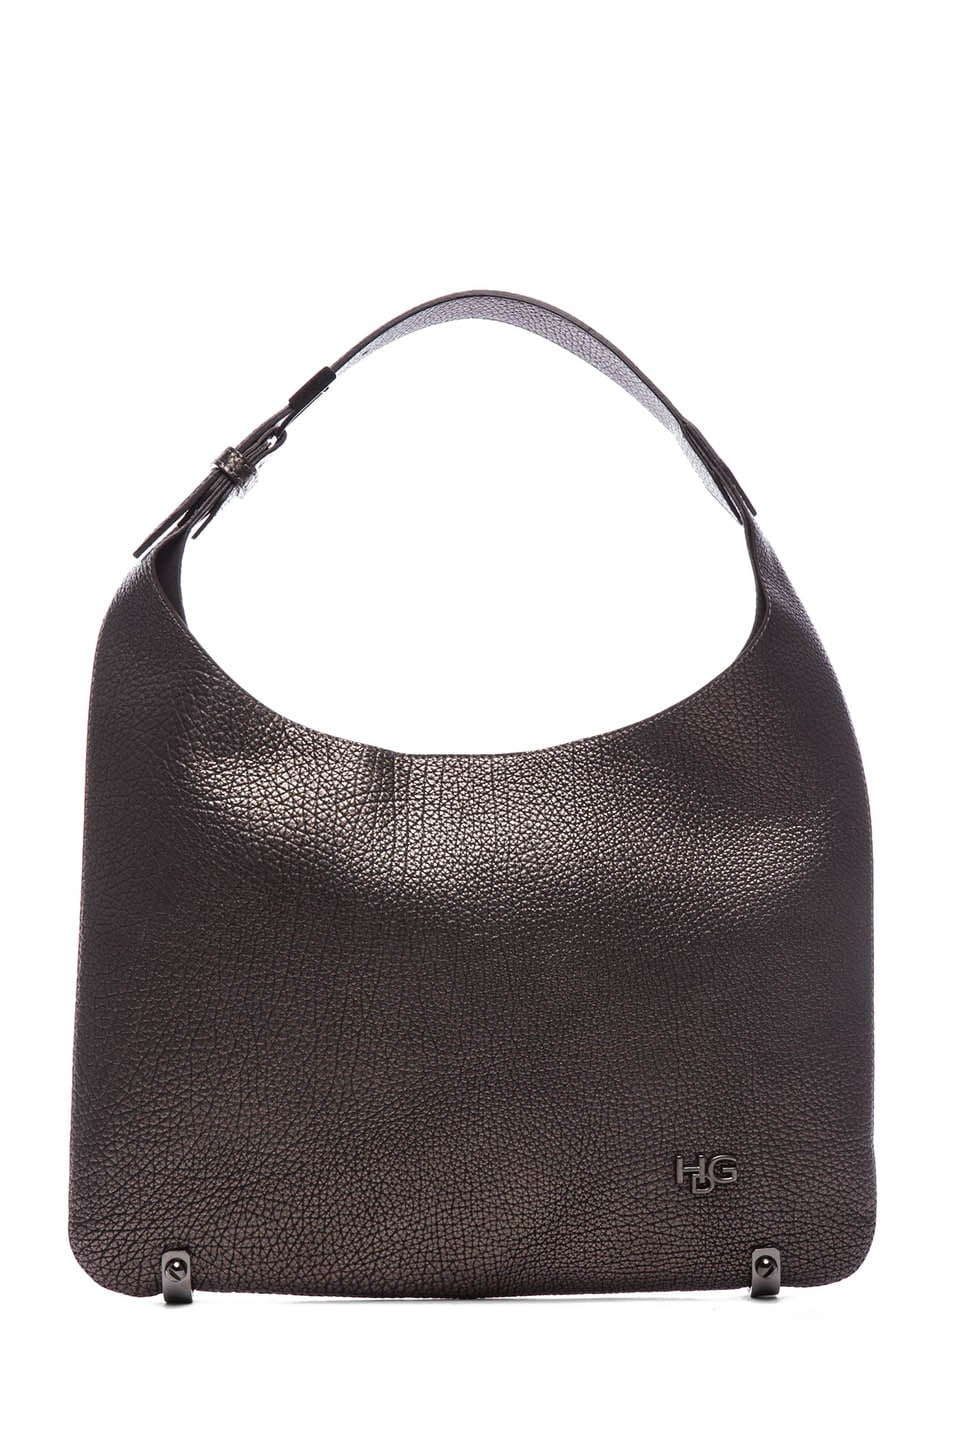 Image 1 of GIVENCHY HDG Hobo in Gunmetal